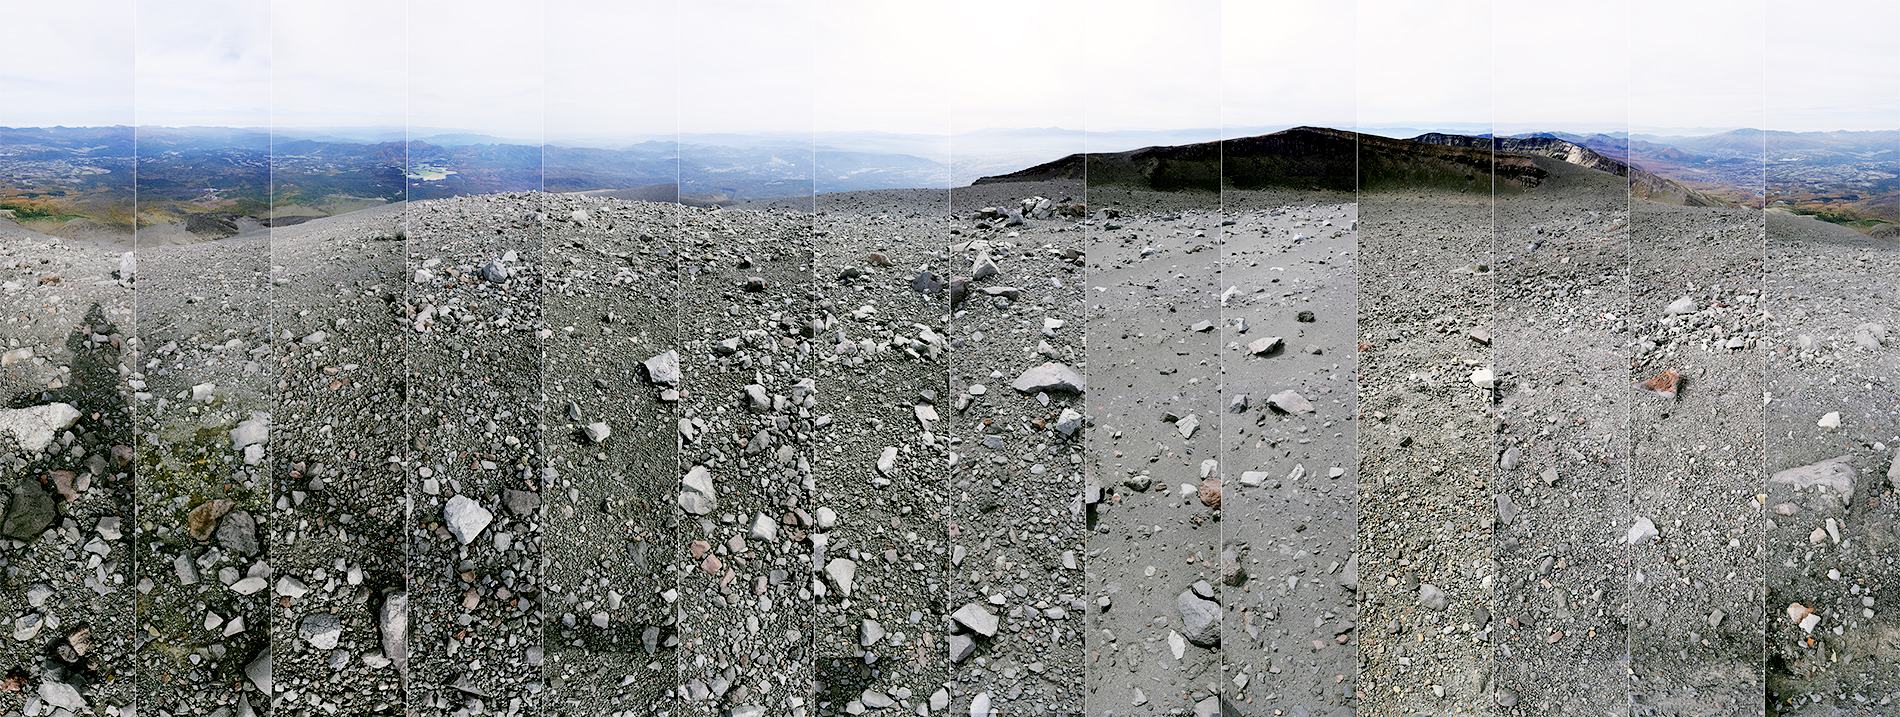 Mount Asama - Crater Edge- 21-10-2016 by - Wouter van Buuren - Mount Asama in Japan is a Volcano on the border of the Nagano and Gunma prefectures. Here we see the landscape from the inner crater edge, volcanic rocks, stones and dust. Also we see the shadow of the artist Wouter van Buuren while photographing from North to East to South to West and back to North. Far on the South horizon there is a glimps of Mount Fuji.